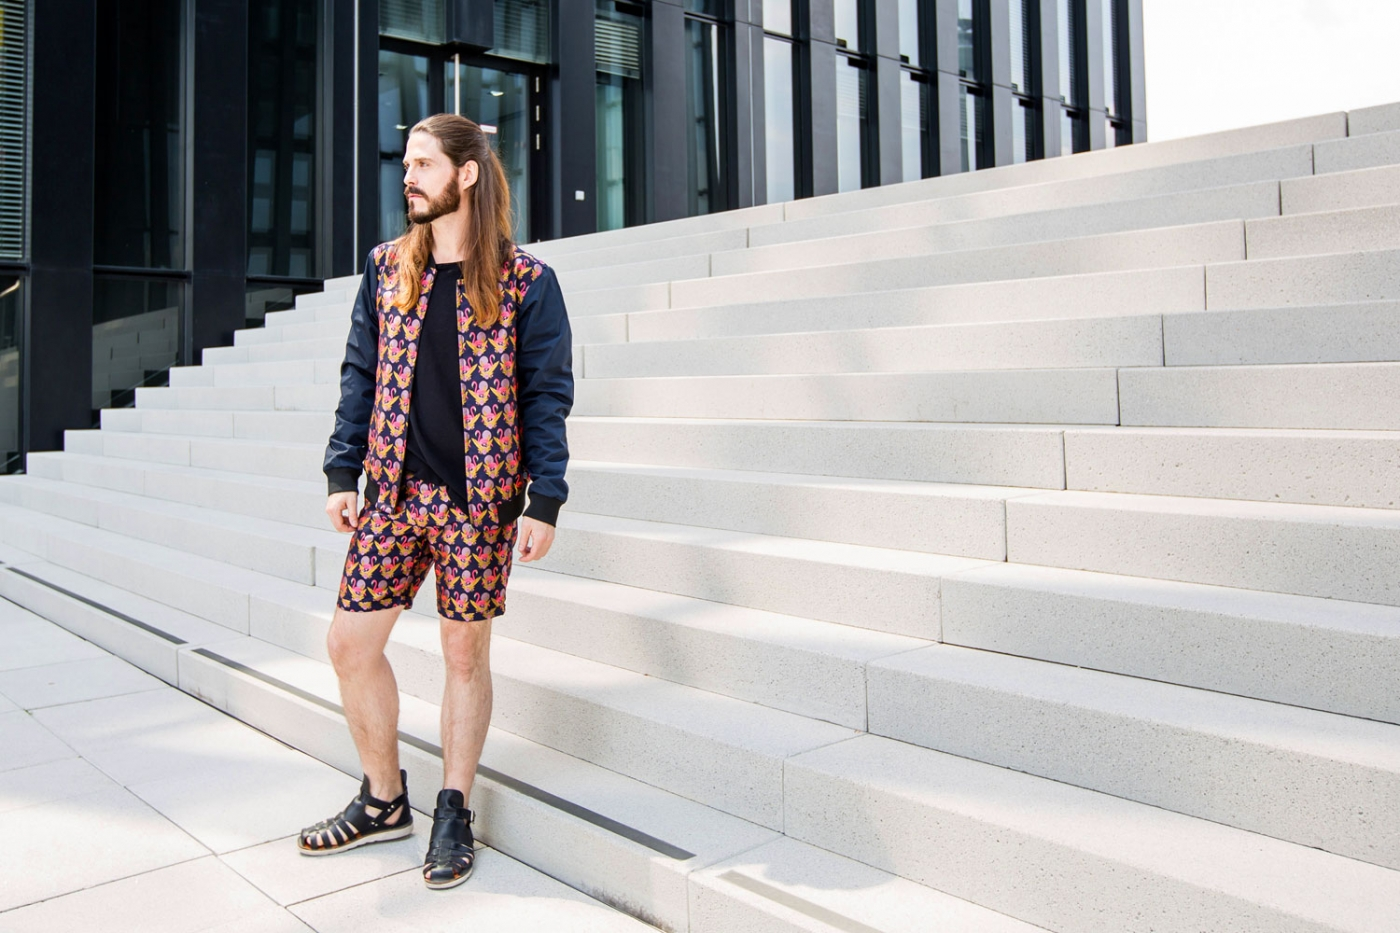 kaisers-neue-kleider-maennermode-blog-fashion-scotchsoda-flamingo-shorts-college-jacke-sandalen-summer